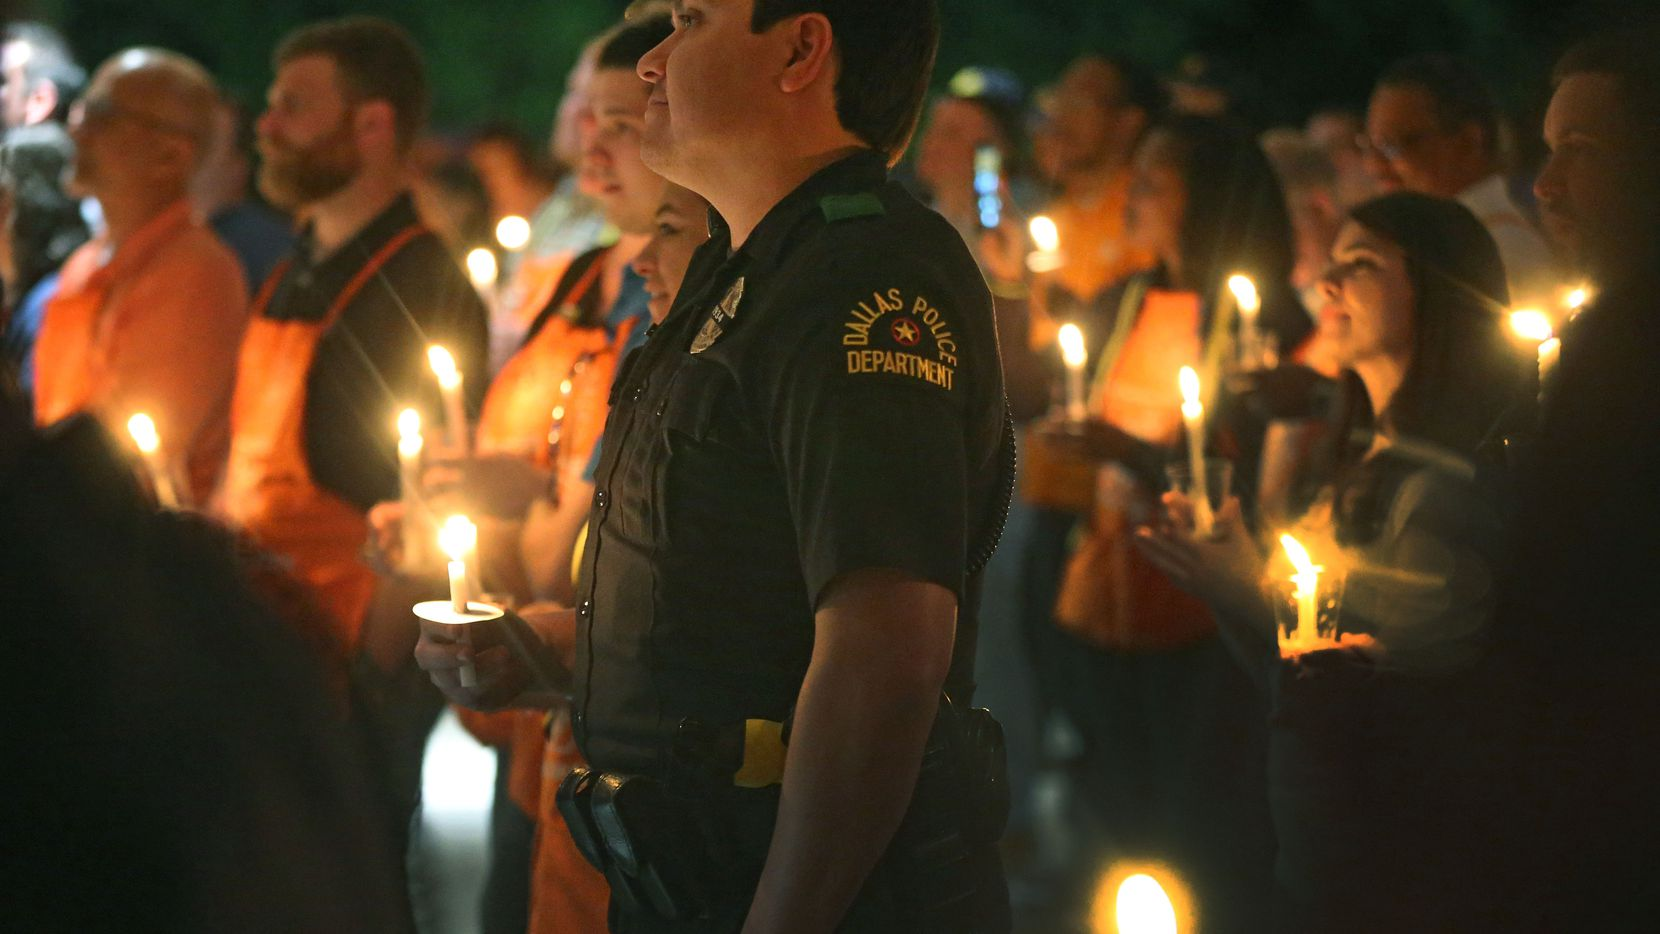 A Dallas policeman stands among Home Depot employees during a candlelight vigil to support Dallas Police Officer Crystal Almeida, and to honor the memory of Officer Rogelio Santander, Jr., held at the Dallas Police Northeast Division substation on Thursday, April 26, 2018.  (Louis DeLuca/The Dallas Morning News)